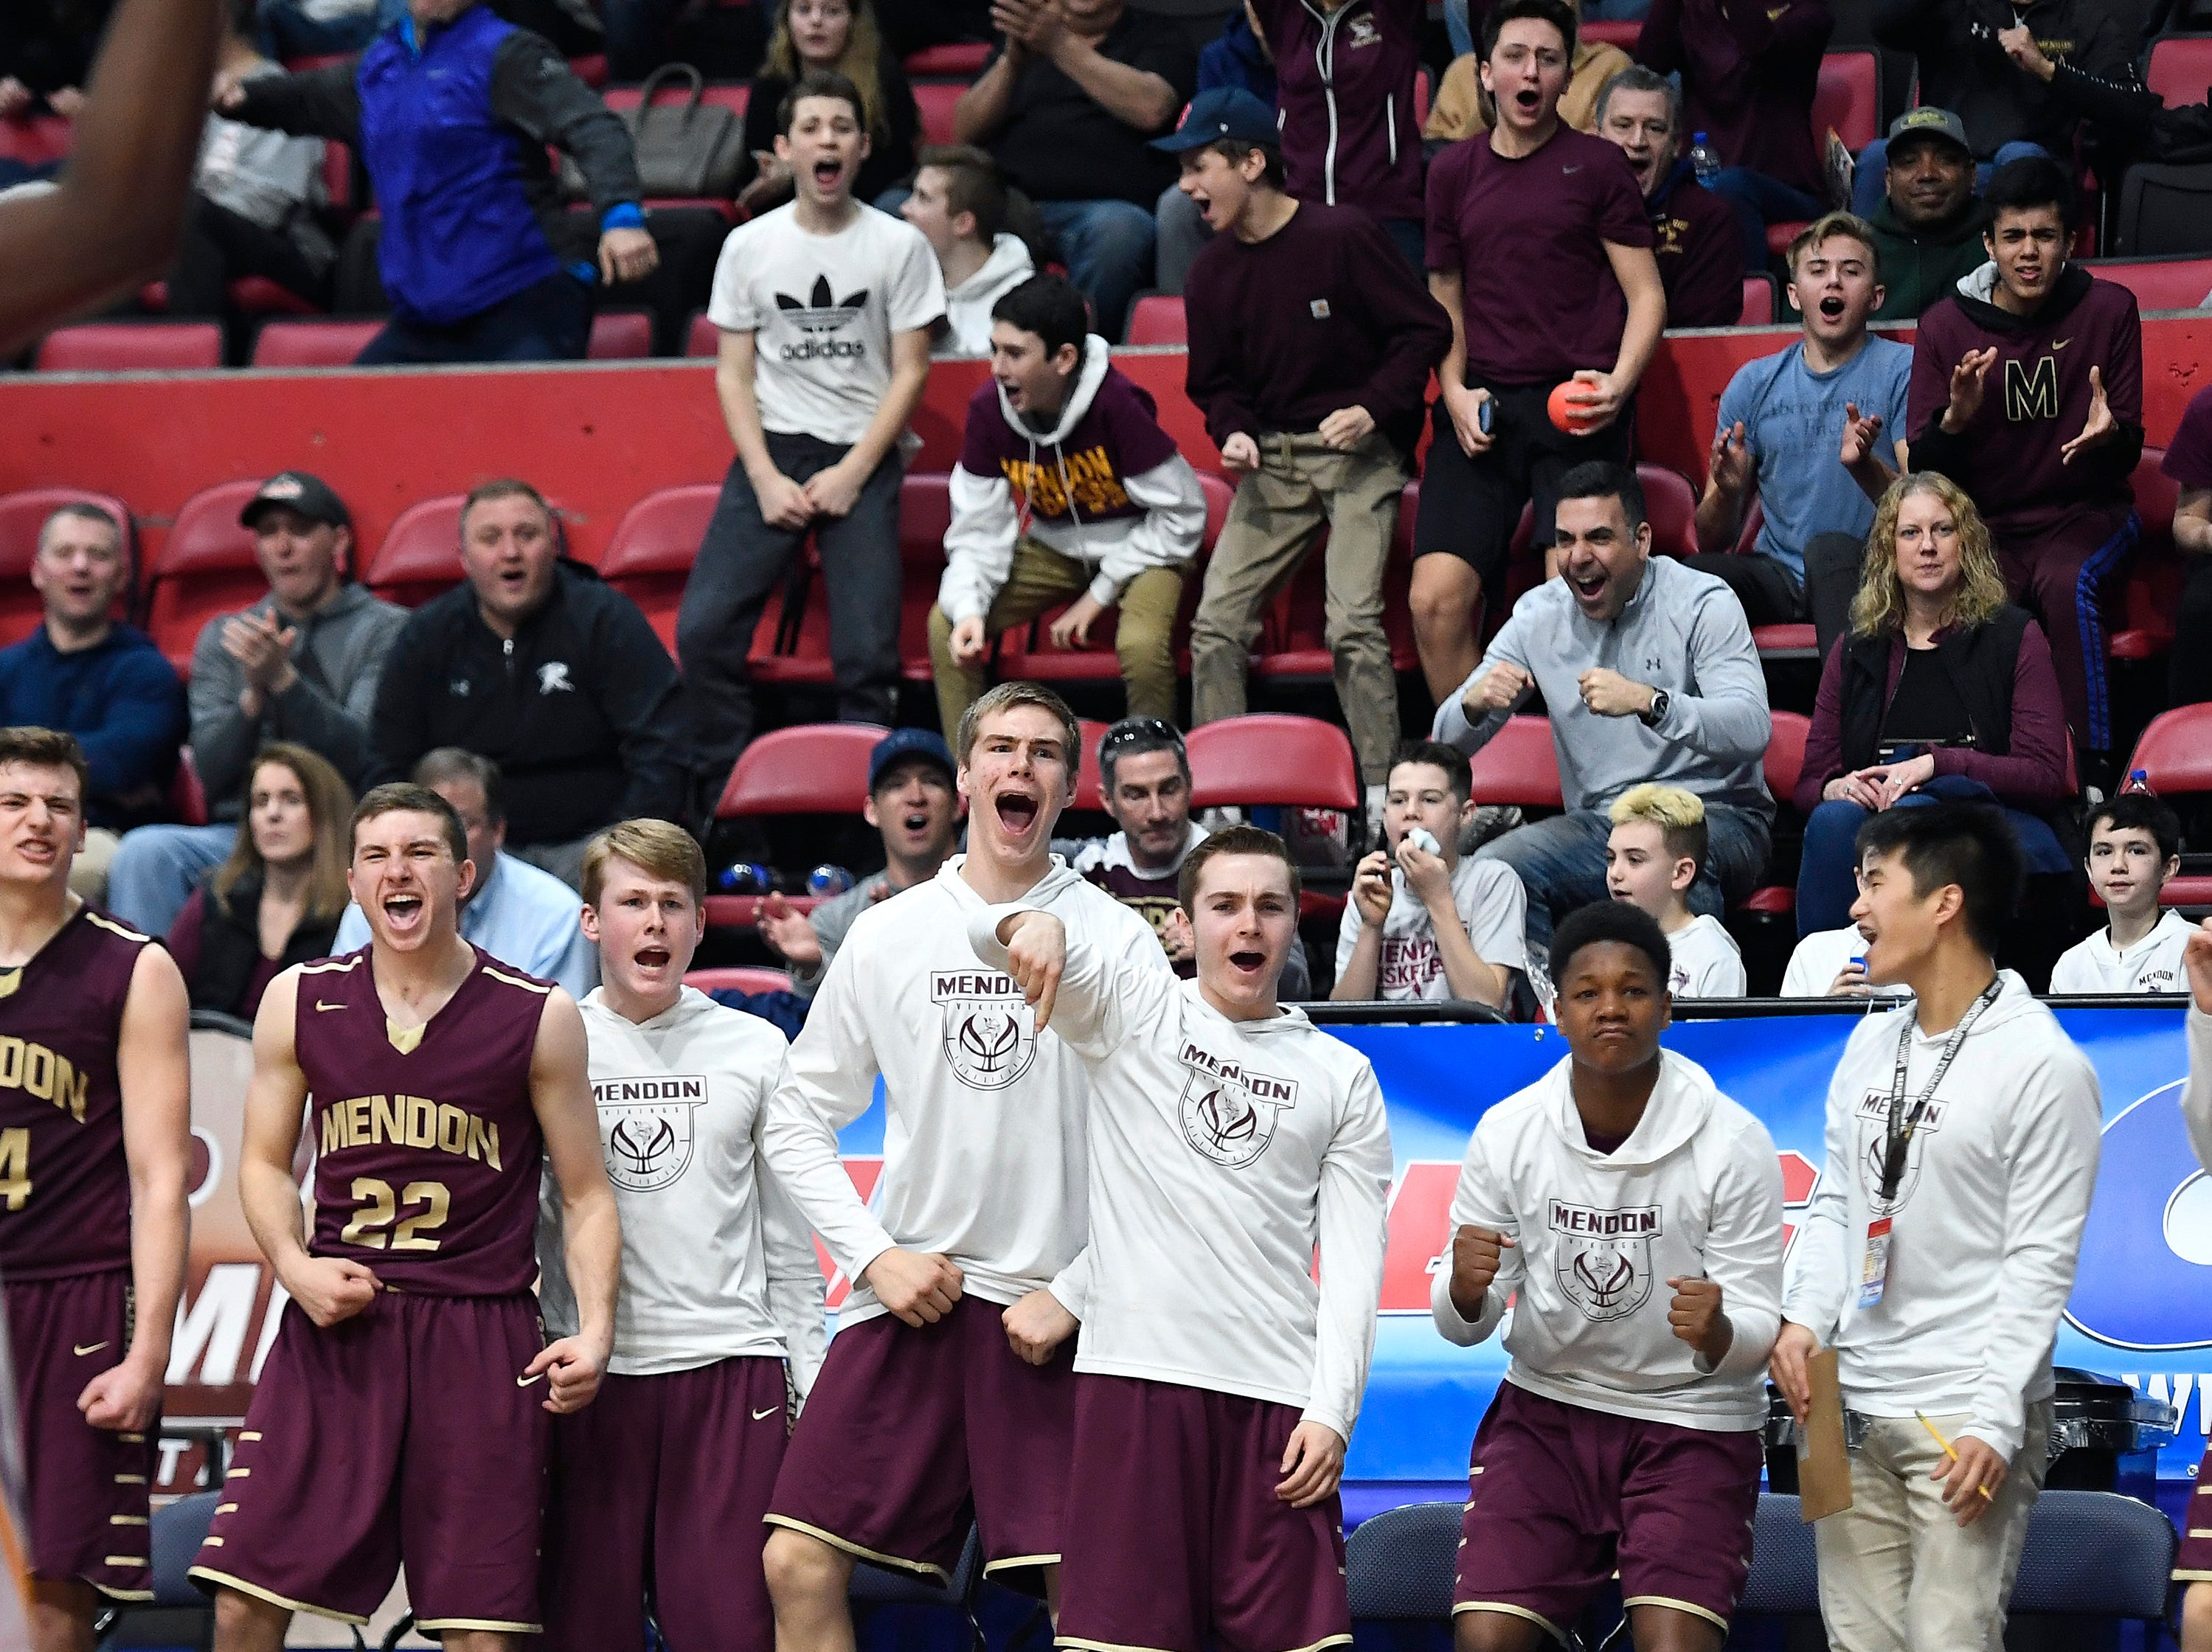 Pittsford Mendon's bench reacts to a Vikings' basket during a Class A semifinal at the NYSPHSAA Boys Basketball Championships in Binghamton.